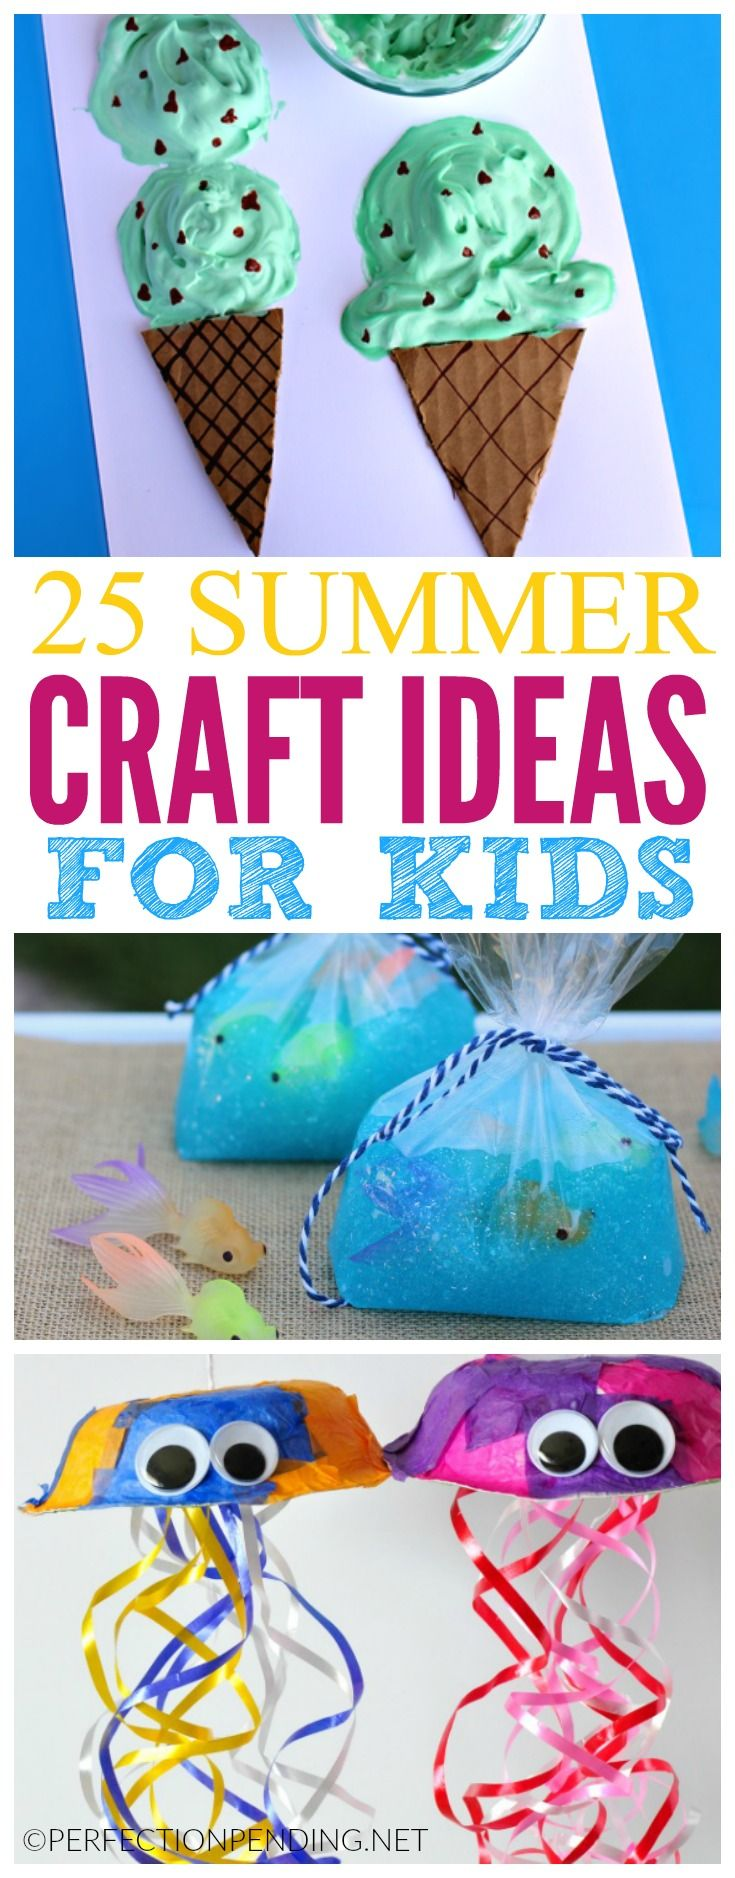 25  best ideas about Kid Crafts on Pinterest  Diy kids crafts, Kids diy and Arts and crafts